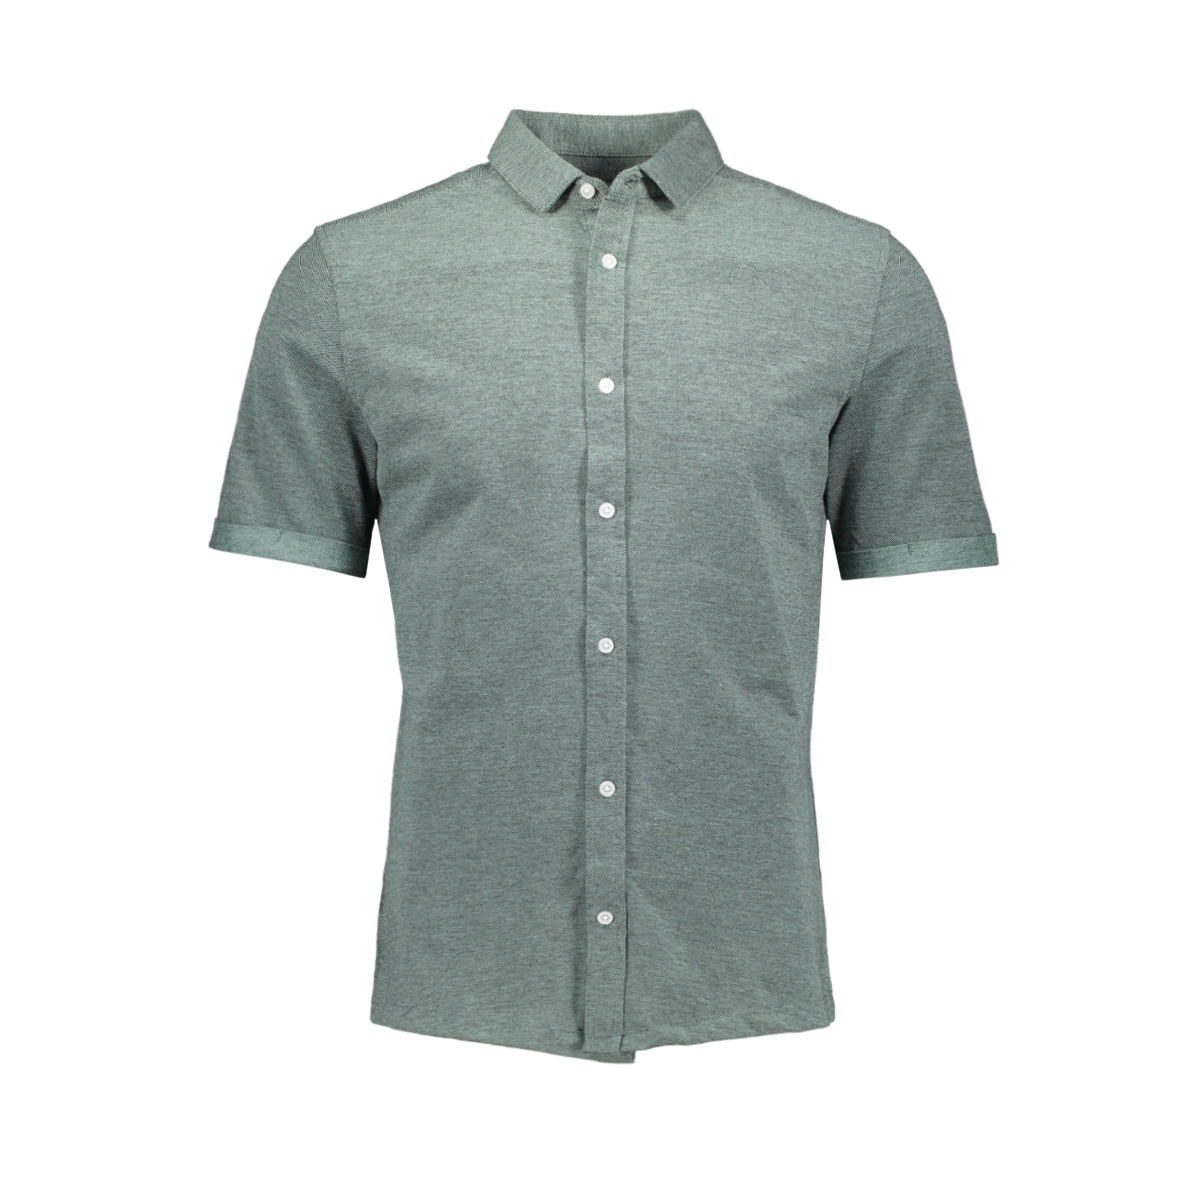 onscuton ss knitted melange shirt r 22011833 only & sons overhemd grayed jade